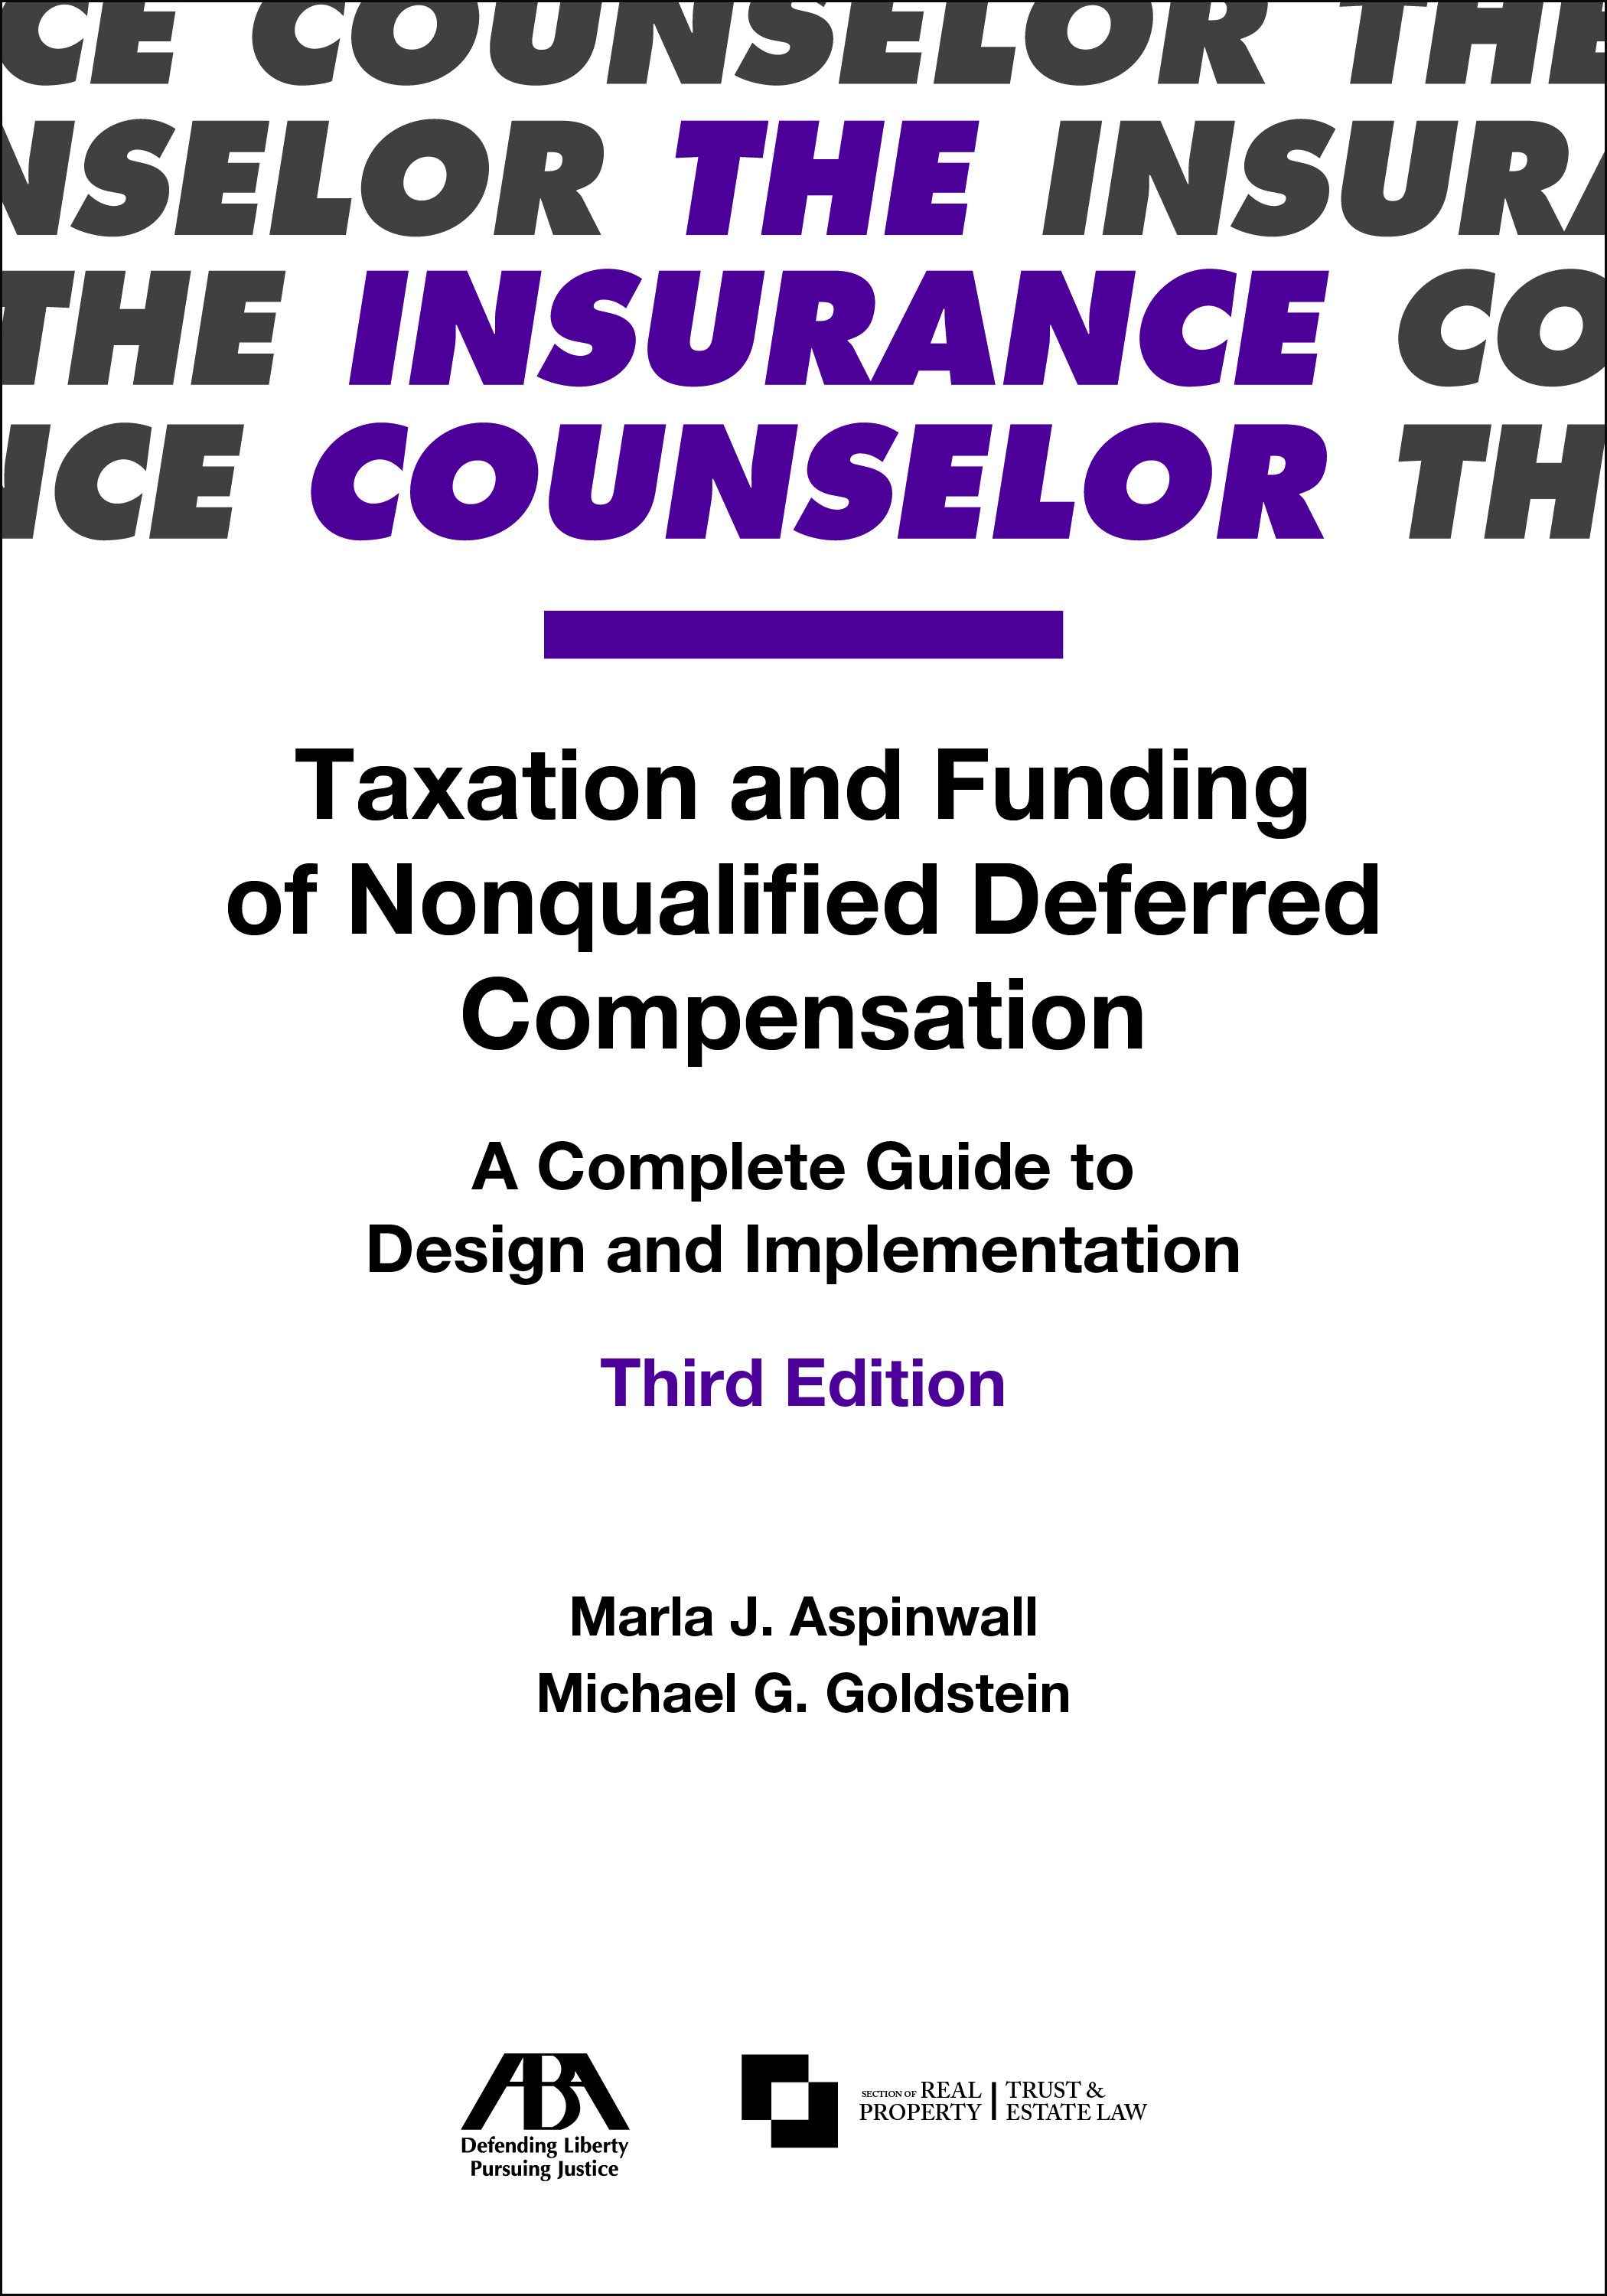 Taxation and Funding of Nonqualified Deferred Compensation